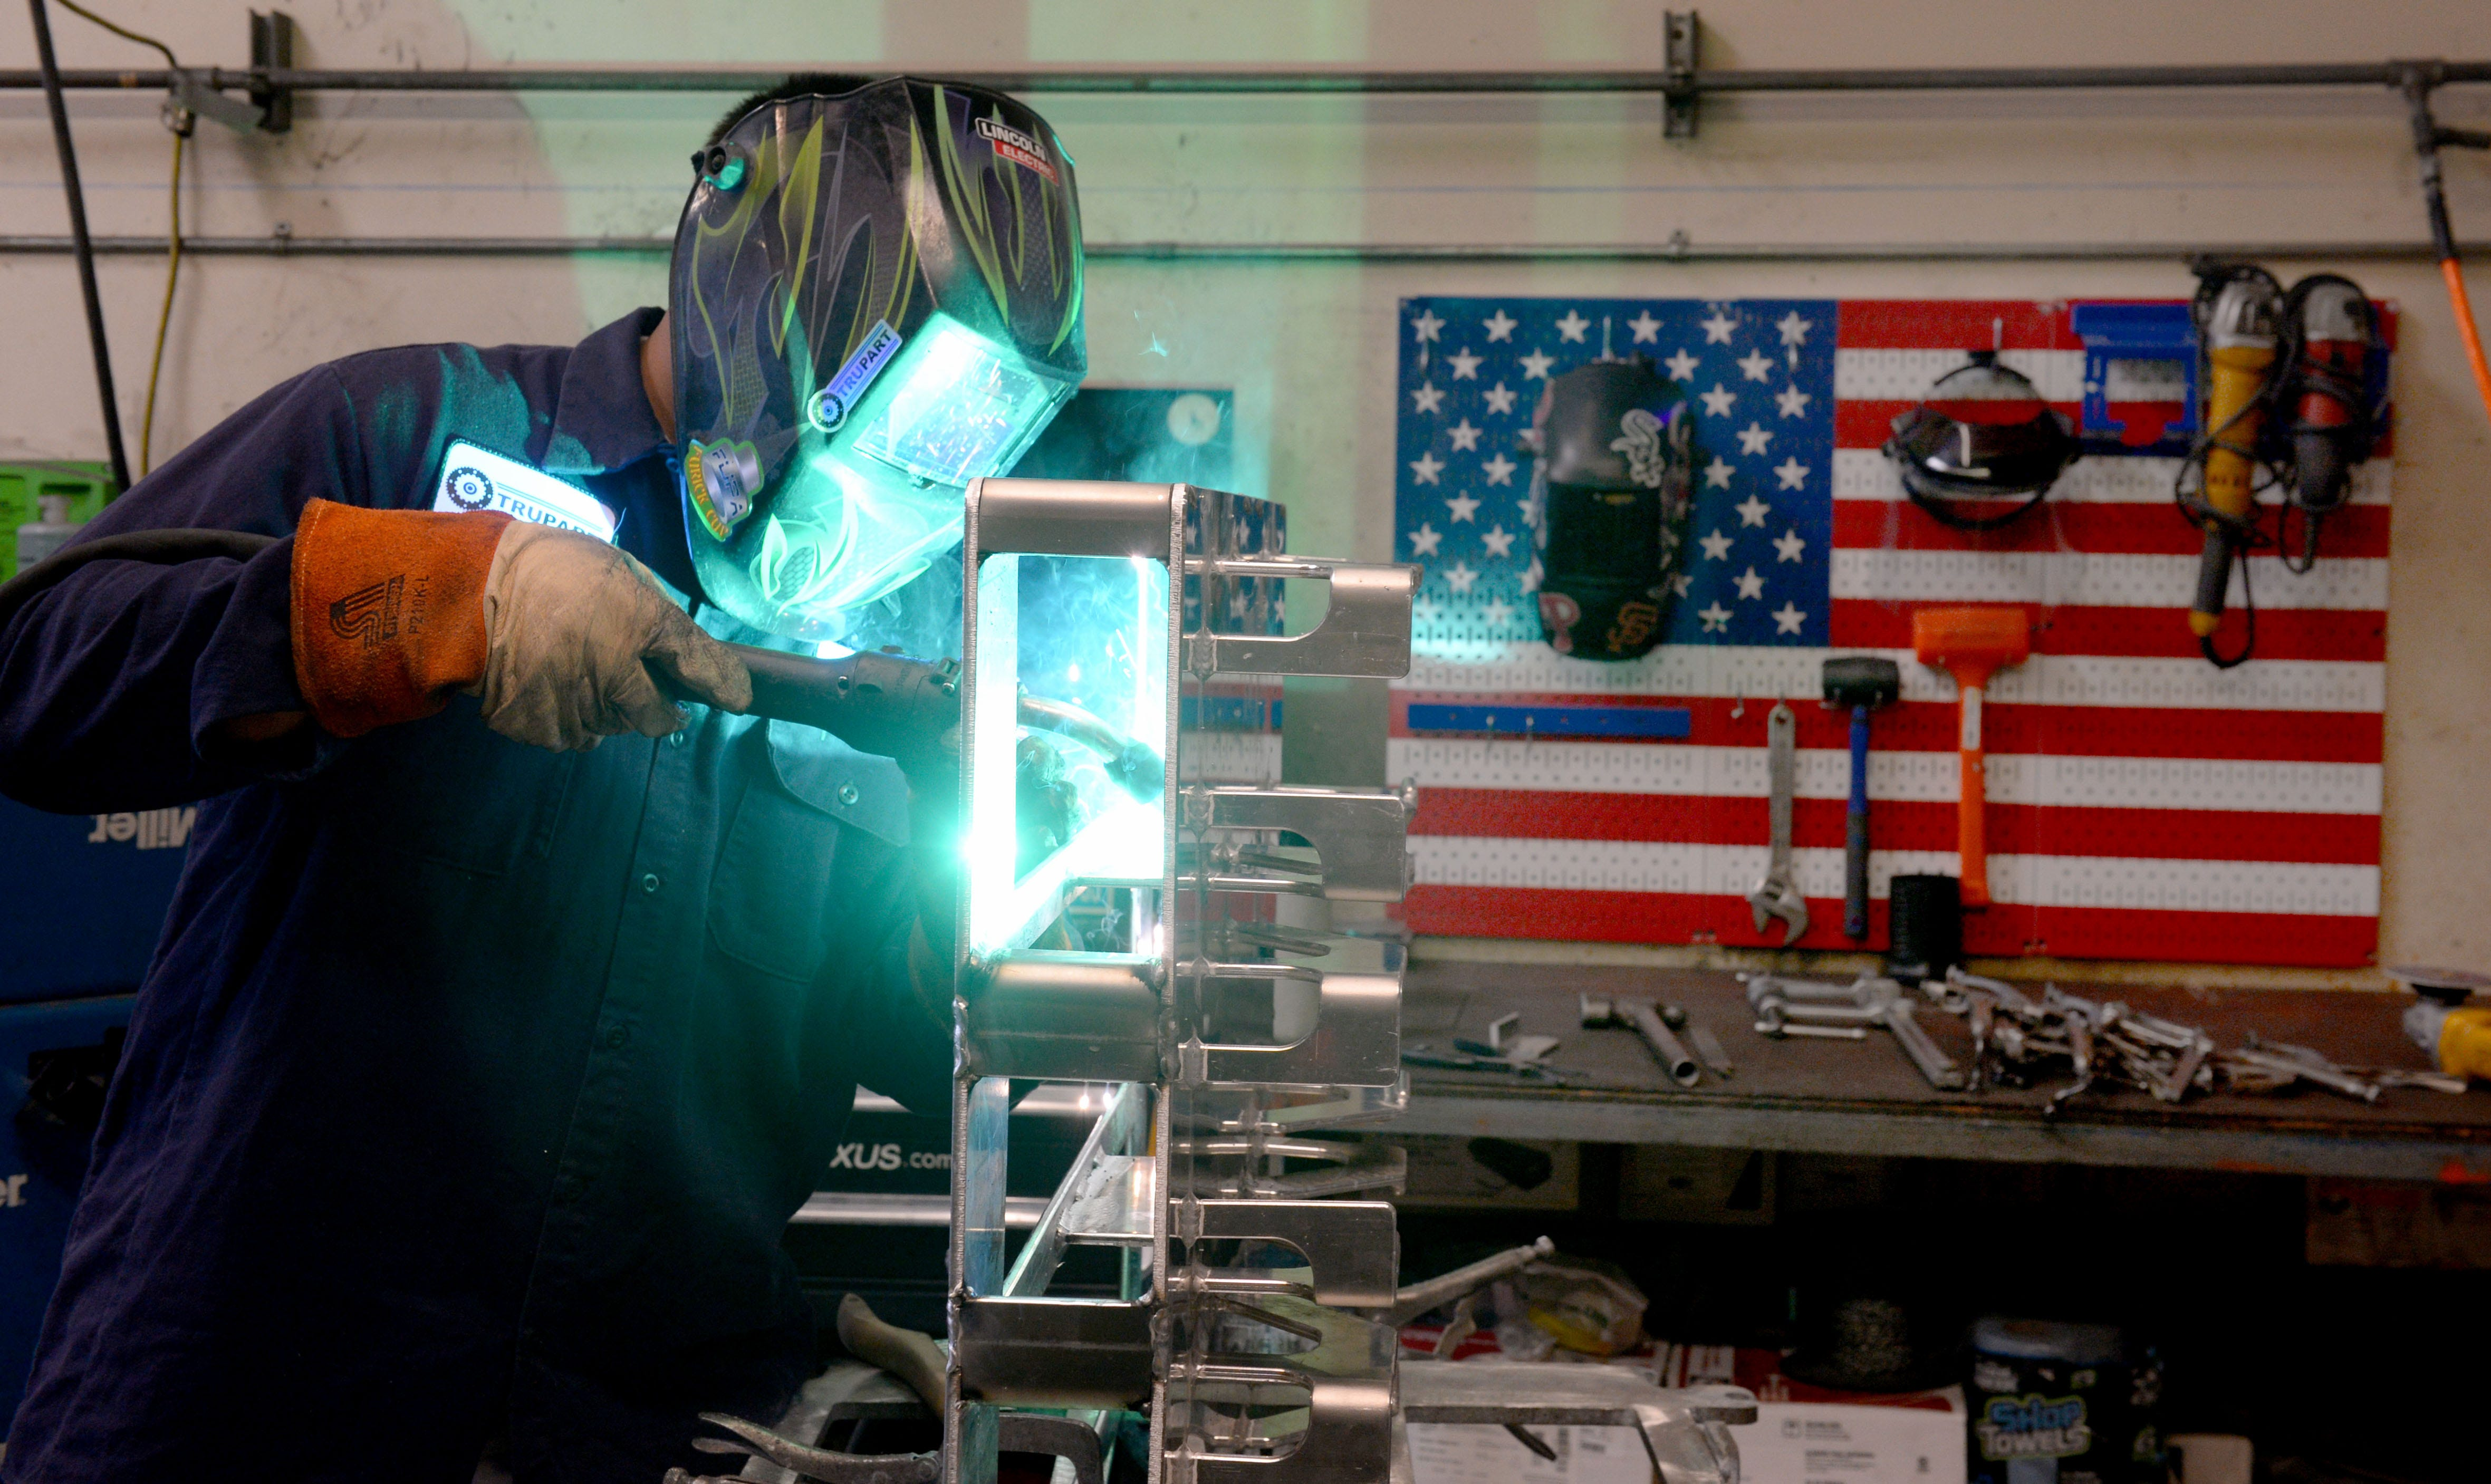 Robert Villanueva welds aluminum pallets at Trupart Manufacturing on Tuesday, Feb. 23, 2021. Trupart is a design, prototype, fabrication and production firm in Ventura that after nearly 50 years in business narrowly avoided closing its doors during the COVID-19 pandemic.